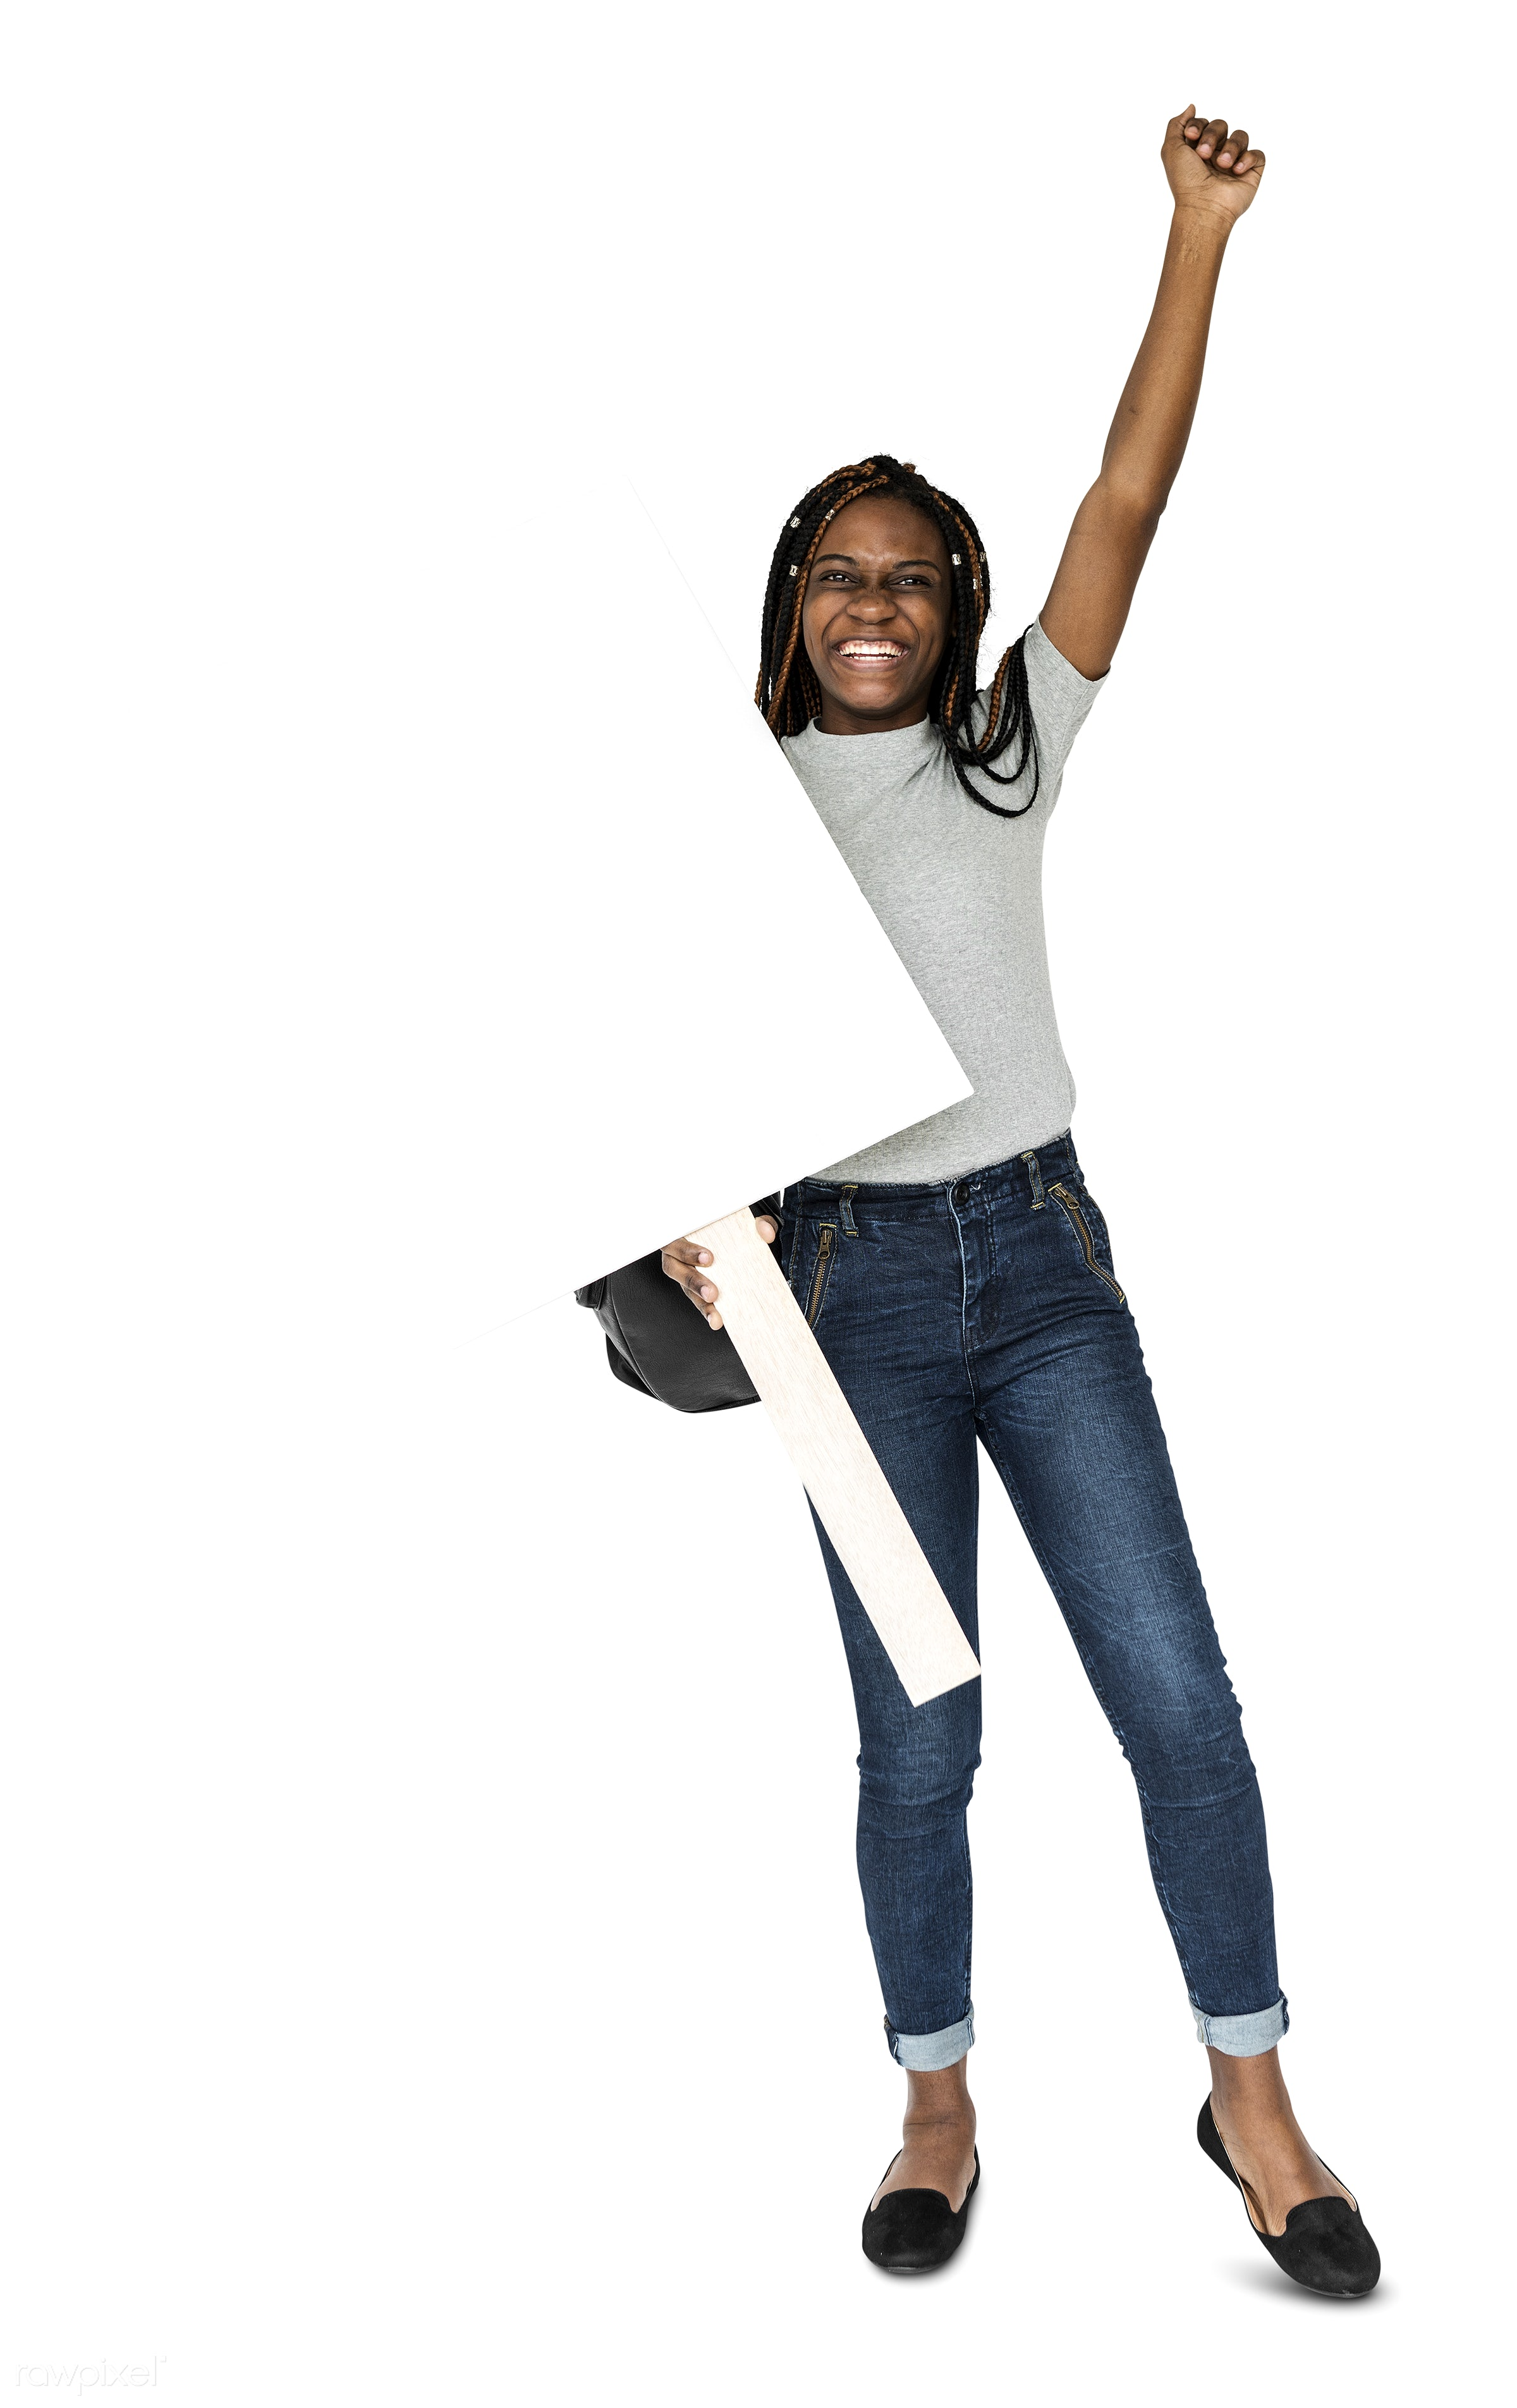 adult, african descent, arms raised, background, banner, blank, casual, cheerful, copy space, female, gesture, girl, holding...